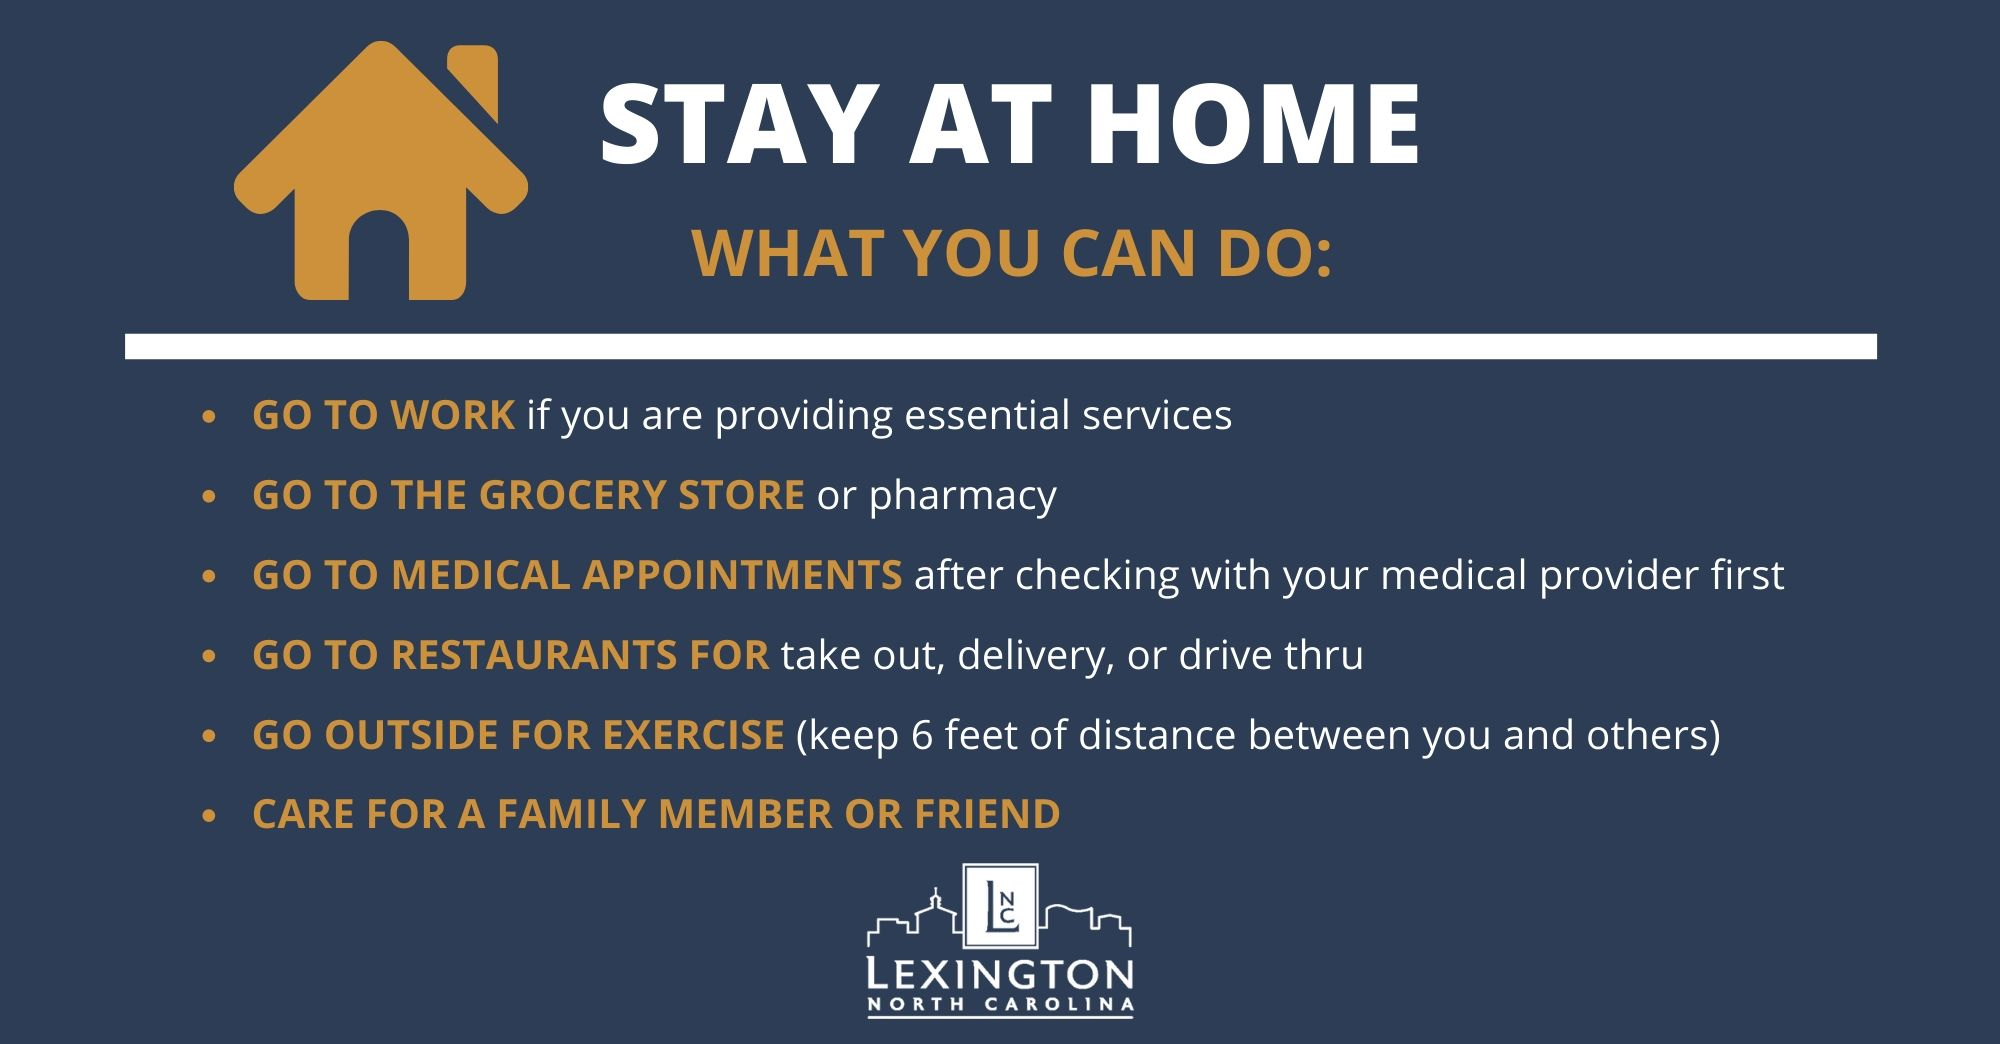 Stay at Home Recommendations